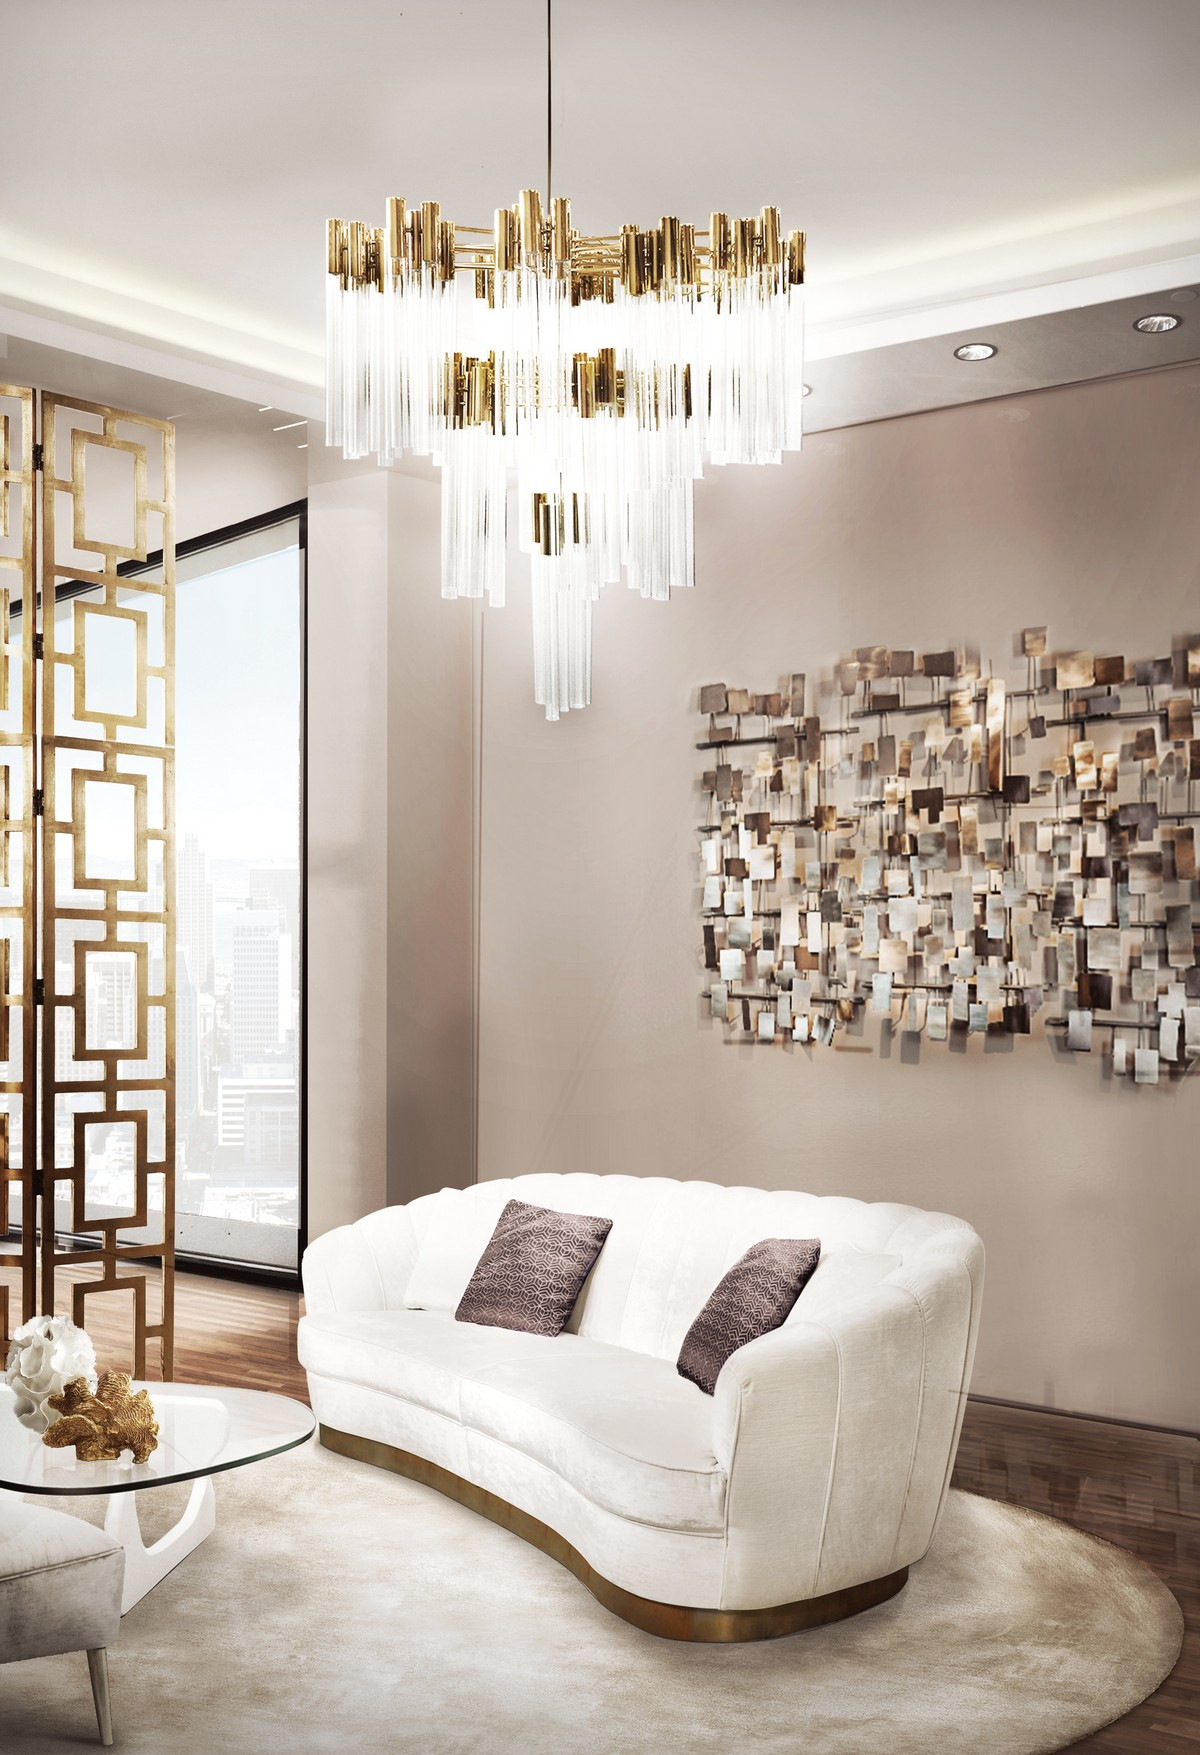 Exclusive Lighting Designs You Will Love exclusive lighting designs Exclusive Lighting Designs You Will Love burj chandlier